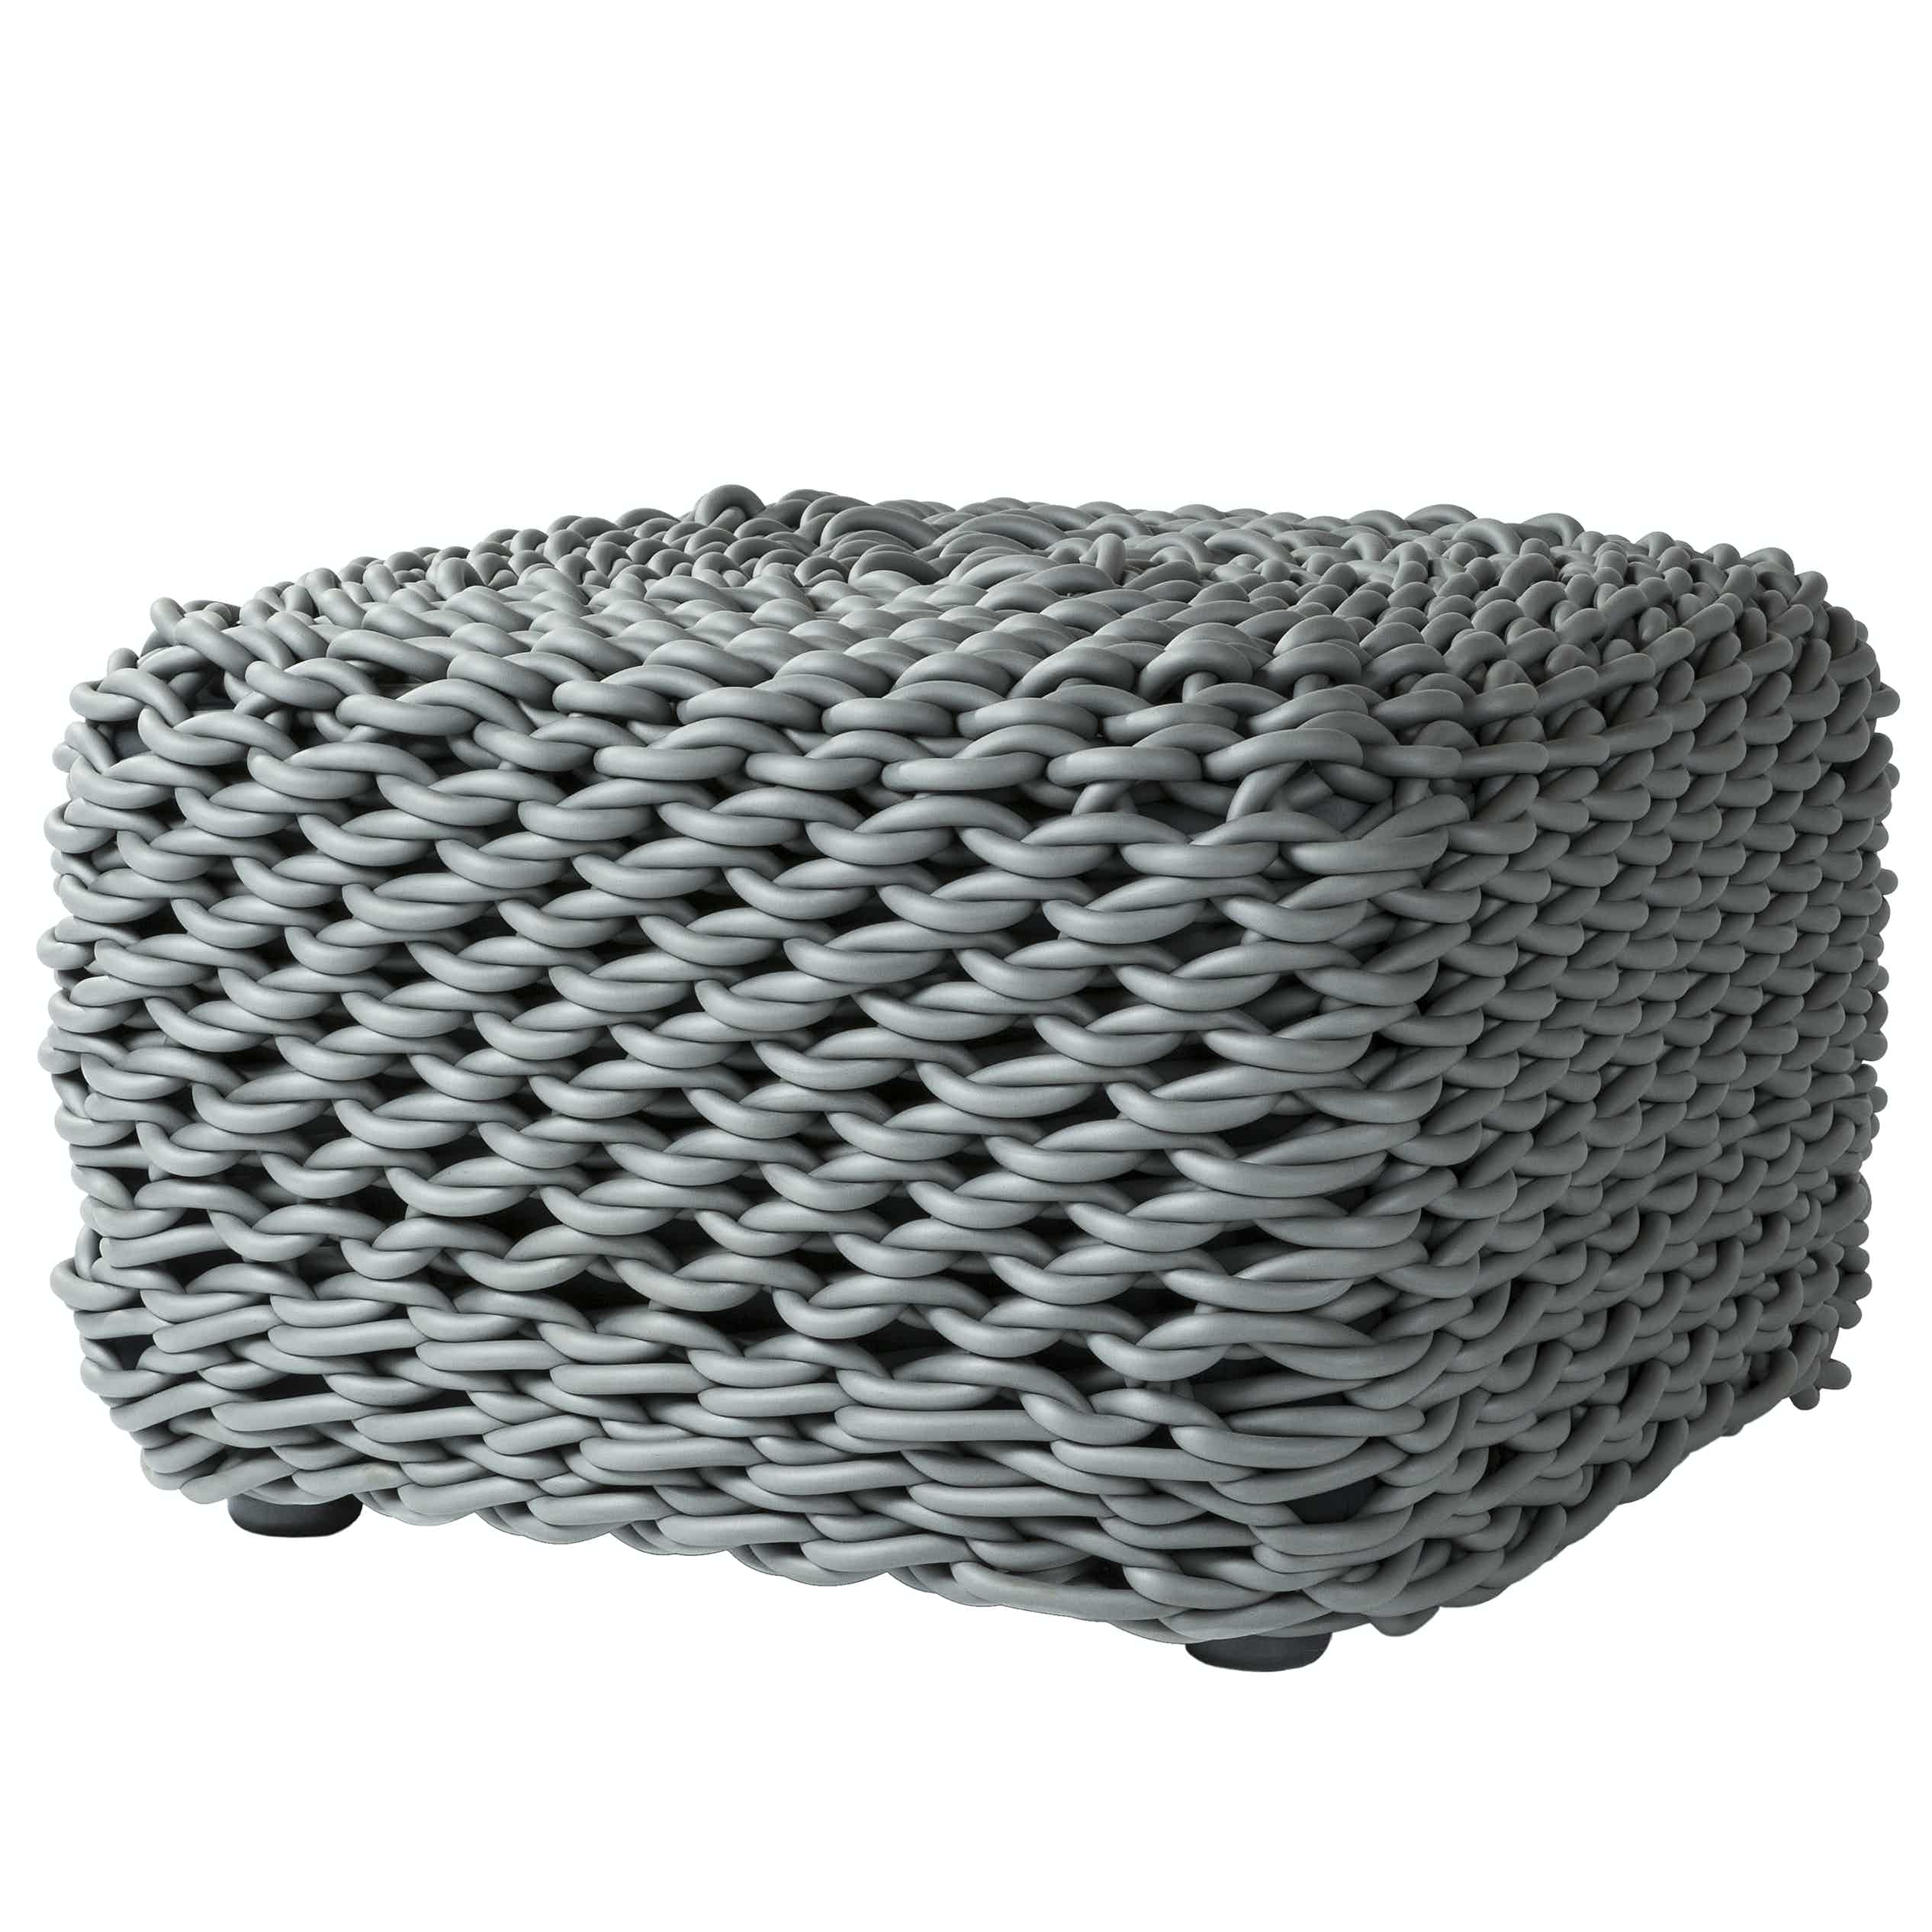 Covo-furniture-grey-rebels-pouf-thumbnail-haute-living